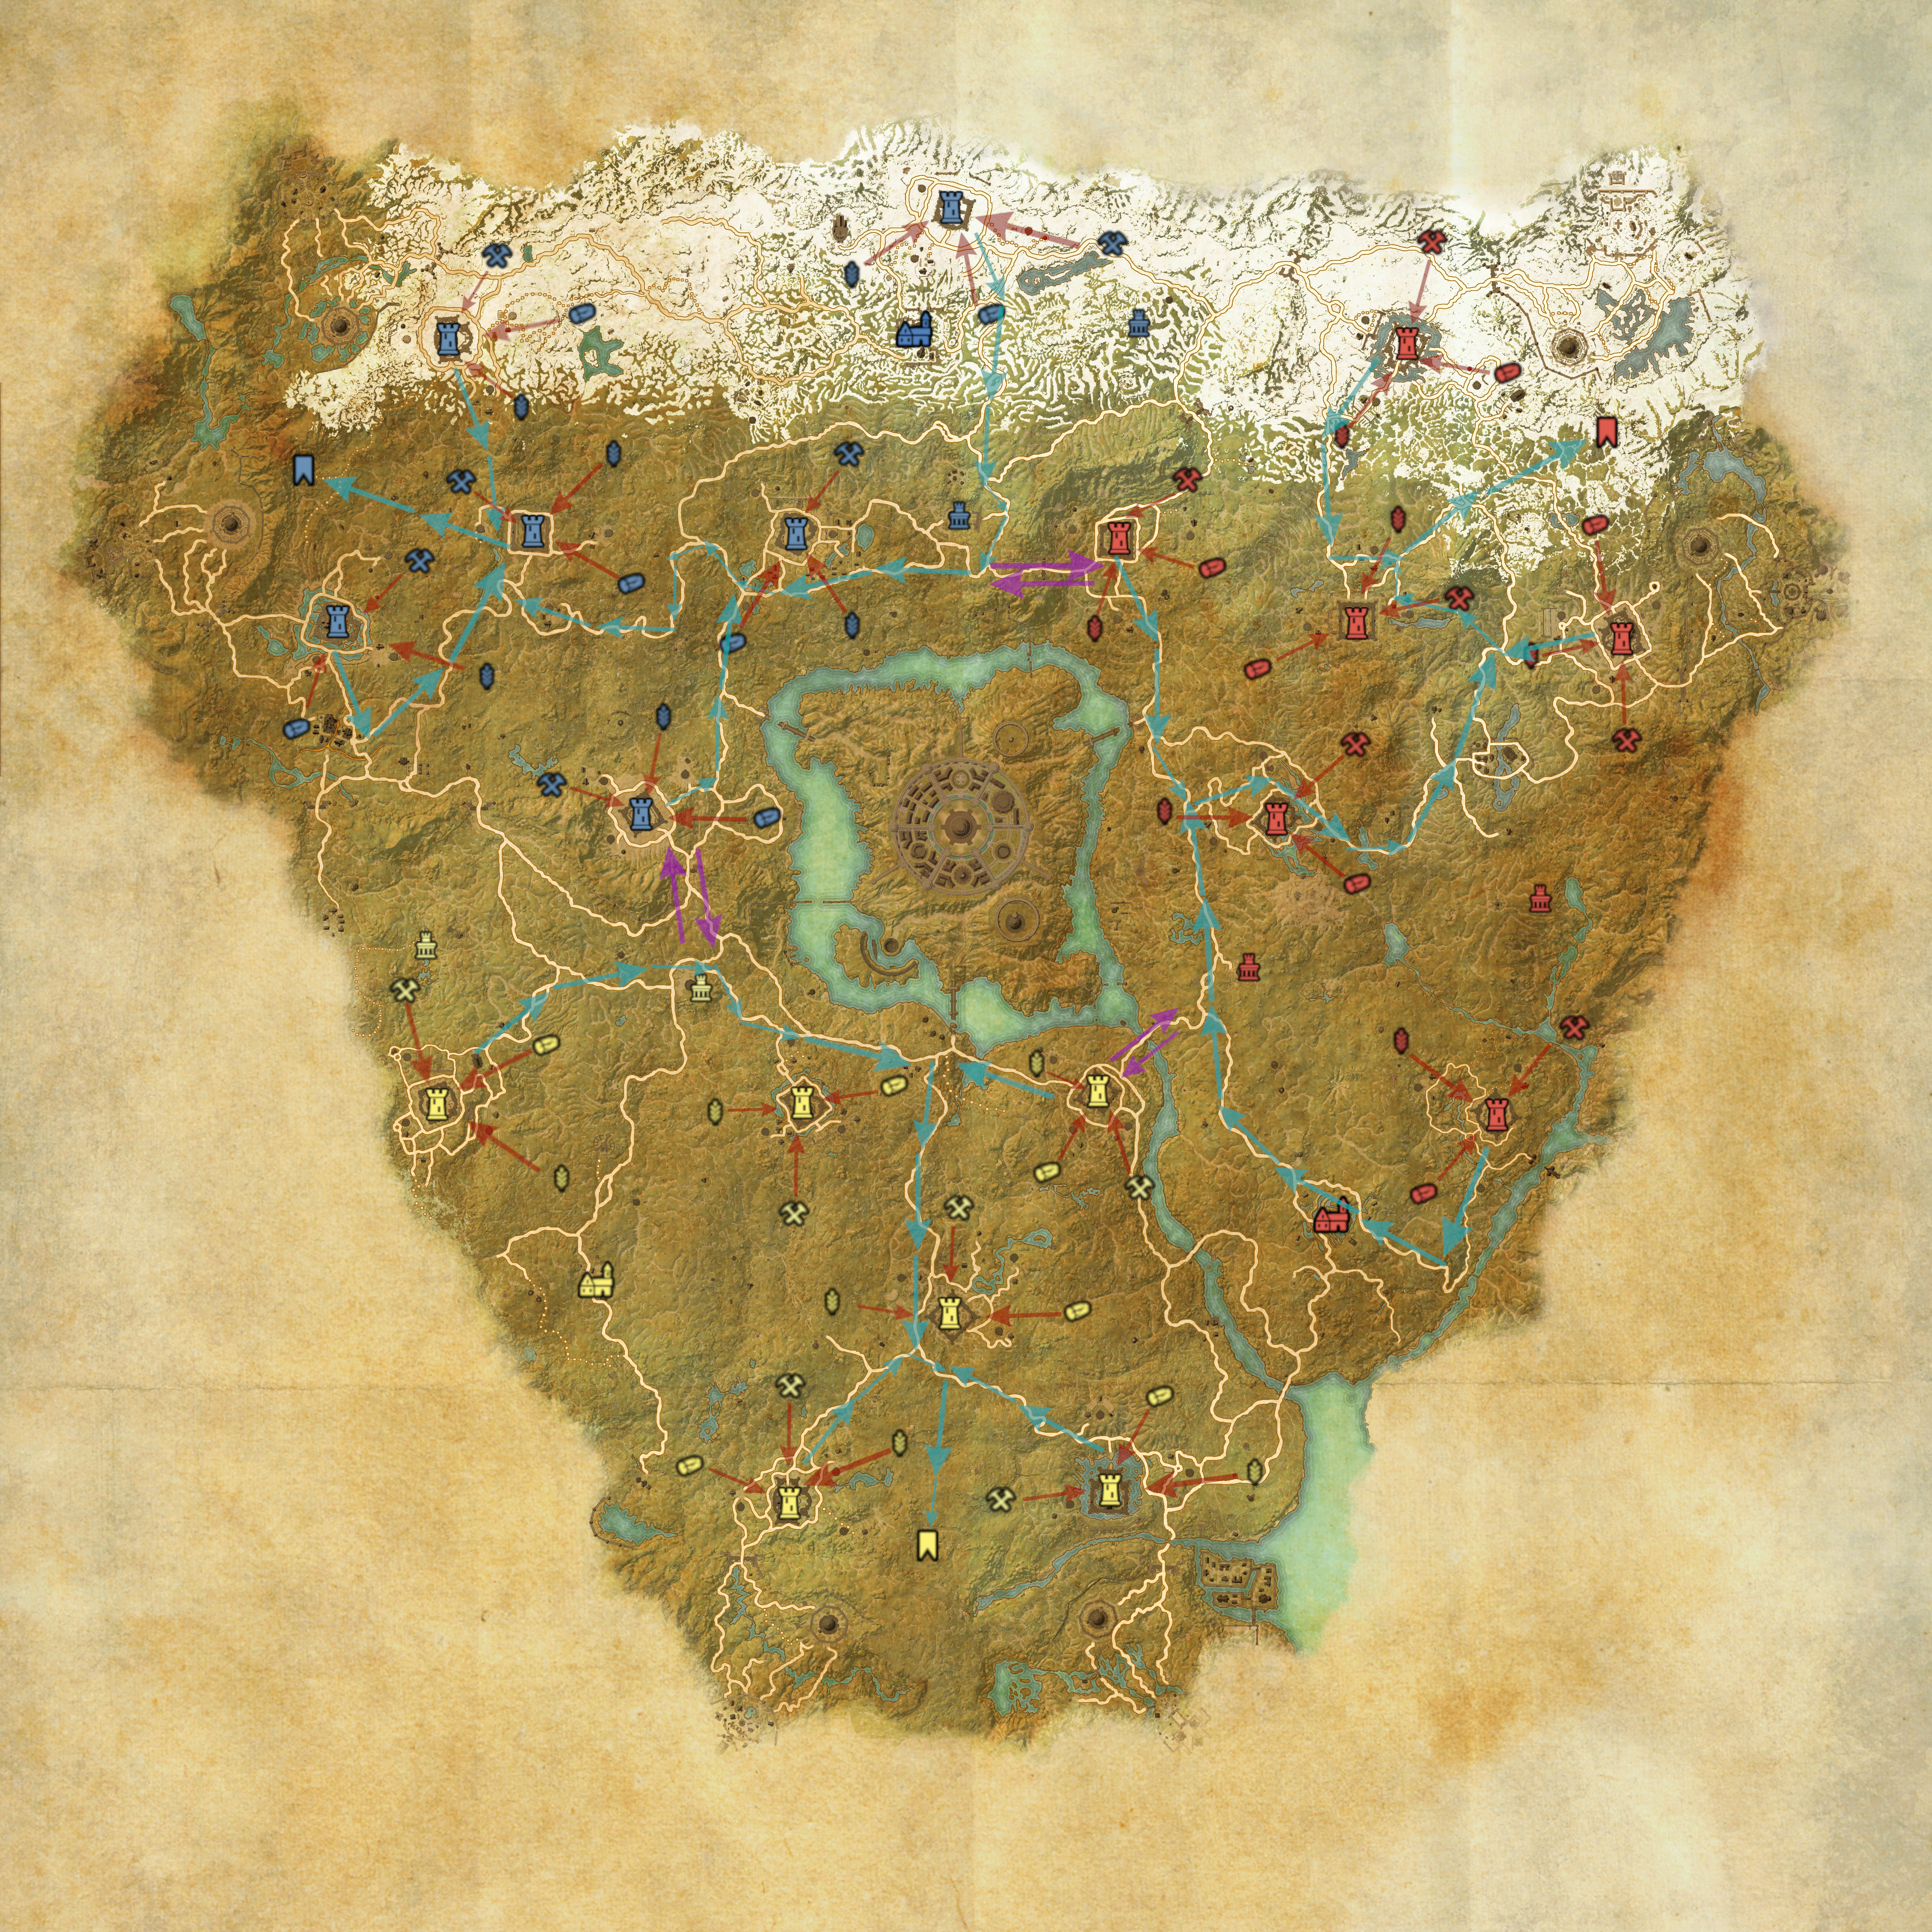 06_03_ResourceRoutesCampaignLargeMap.png